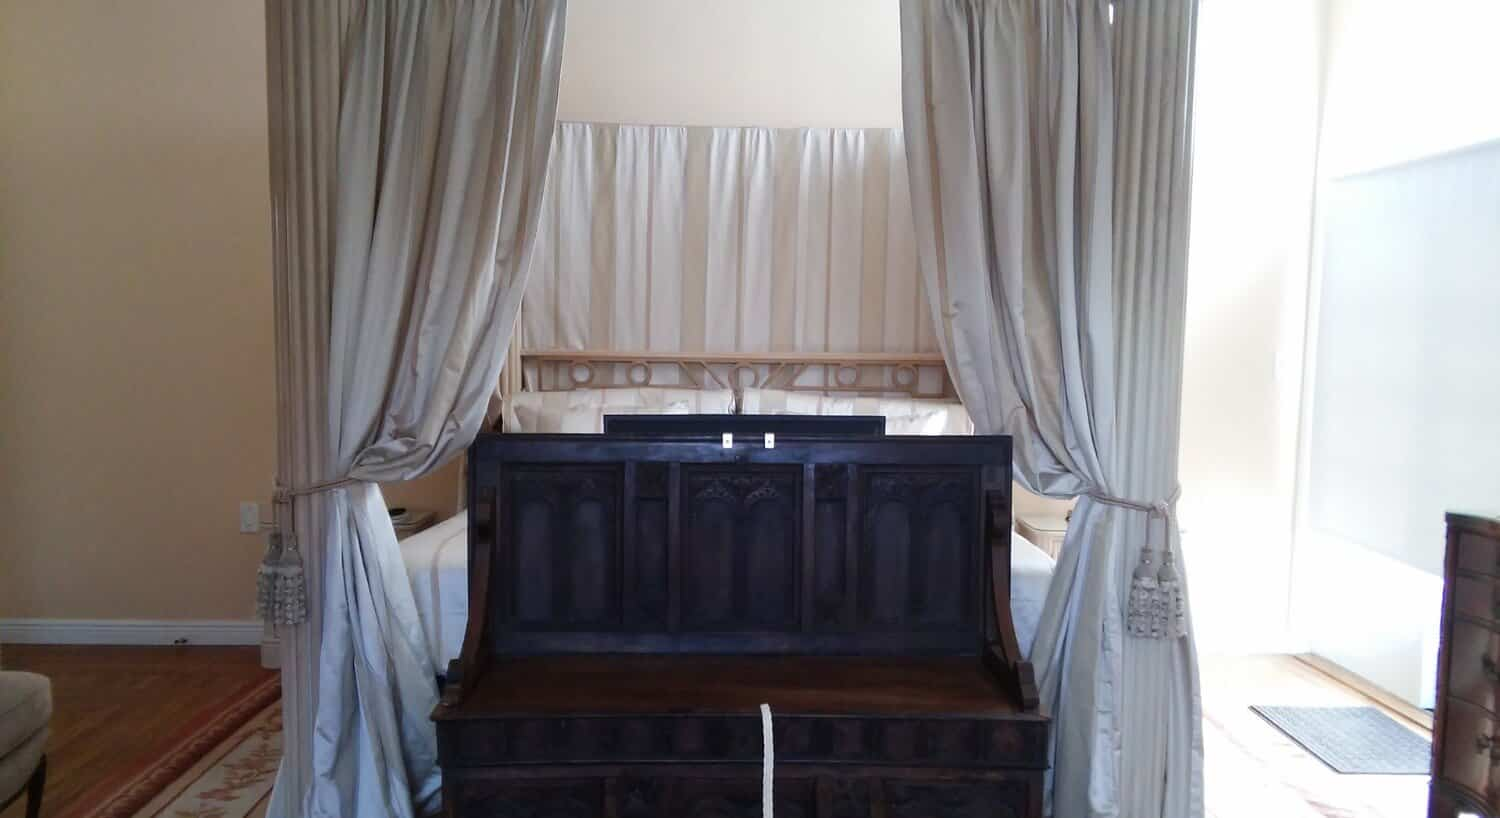 Antique pew at end of a canopy bed made up in heavy silken  bedding.